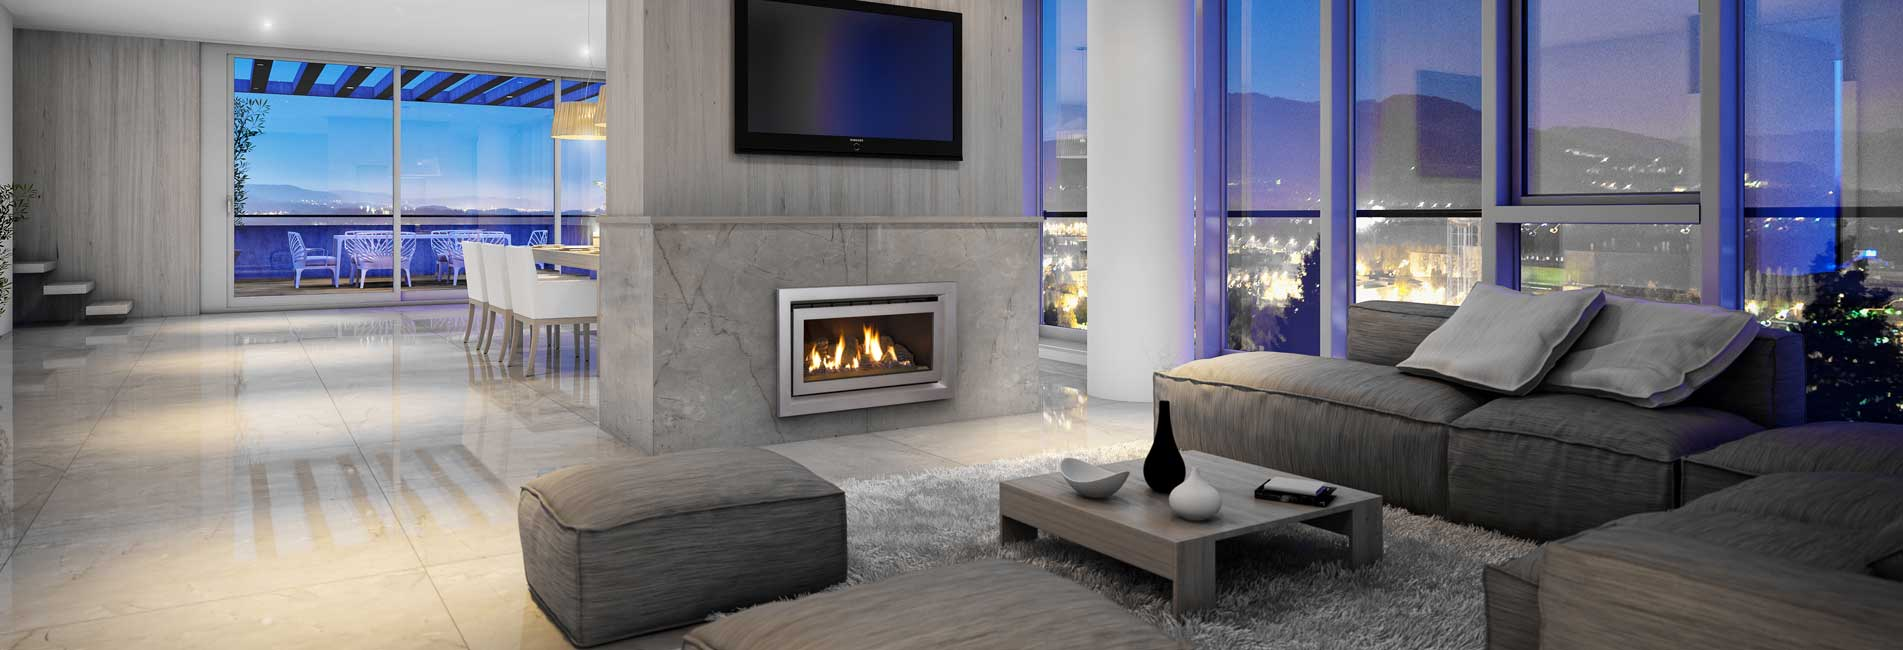 Ducted Heater Service Melbourne